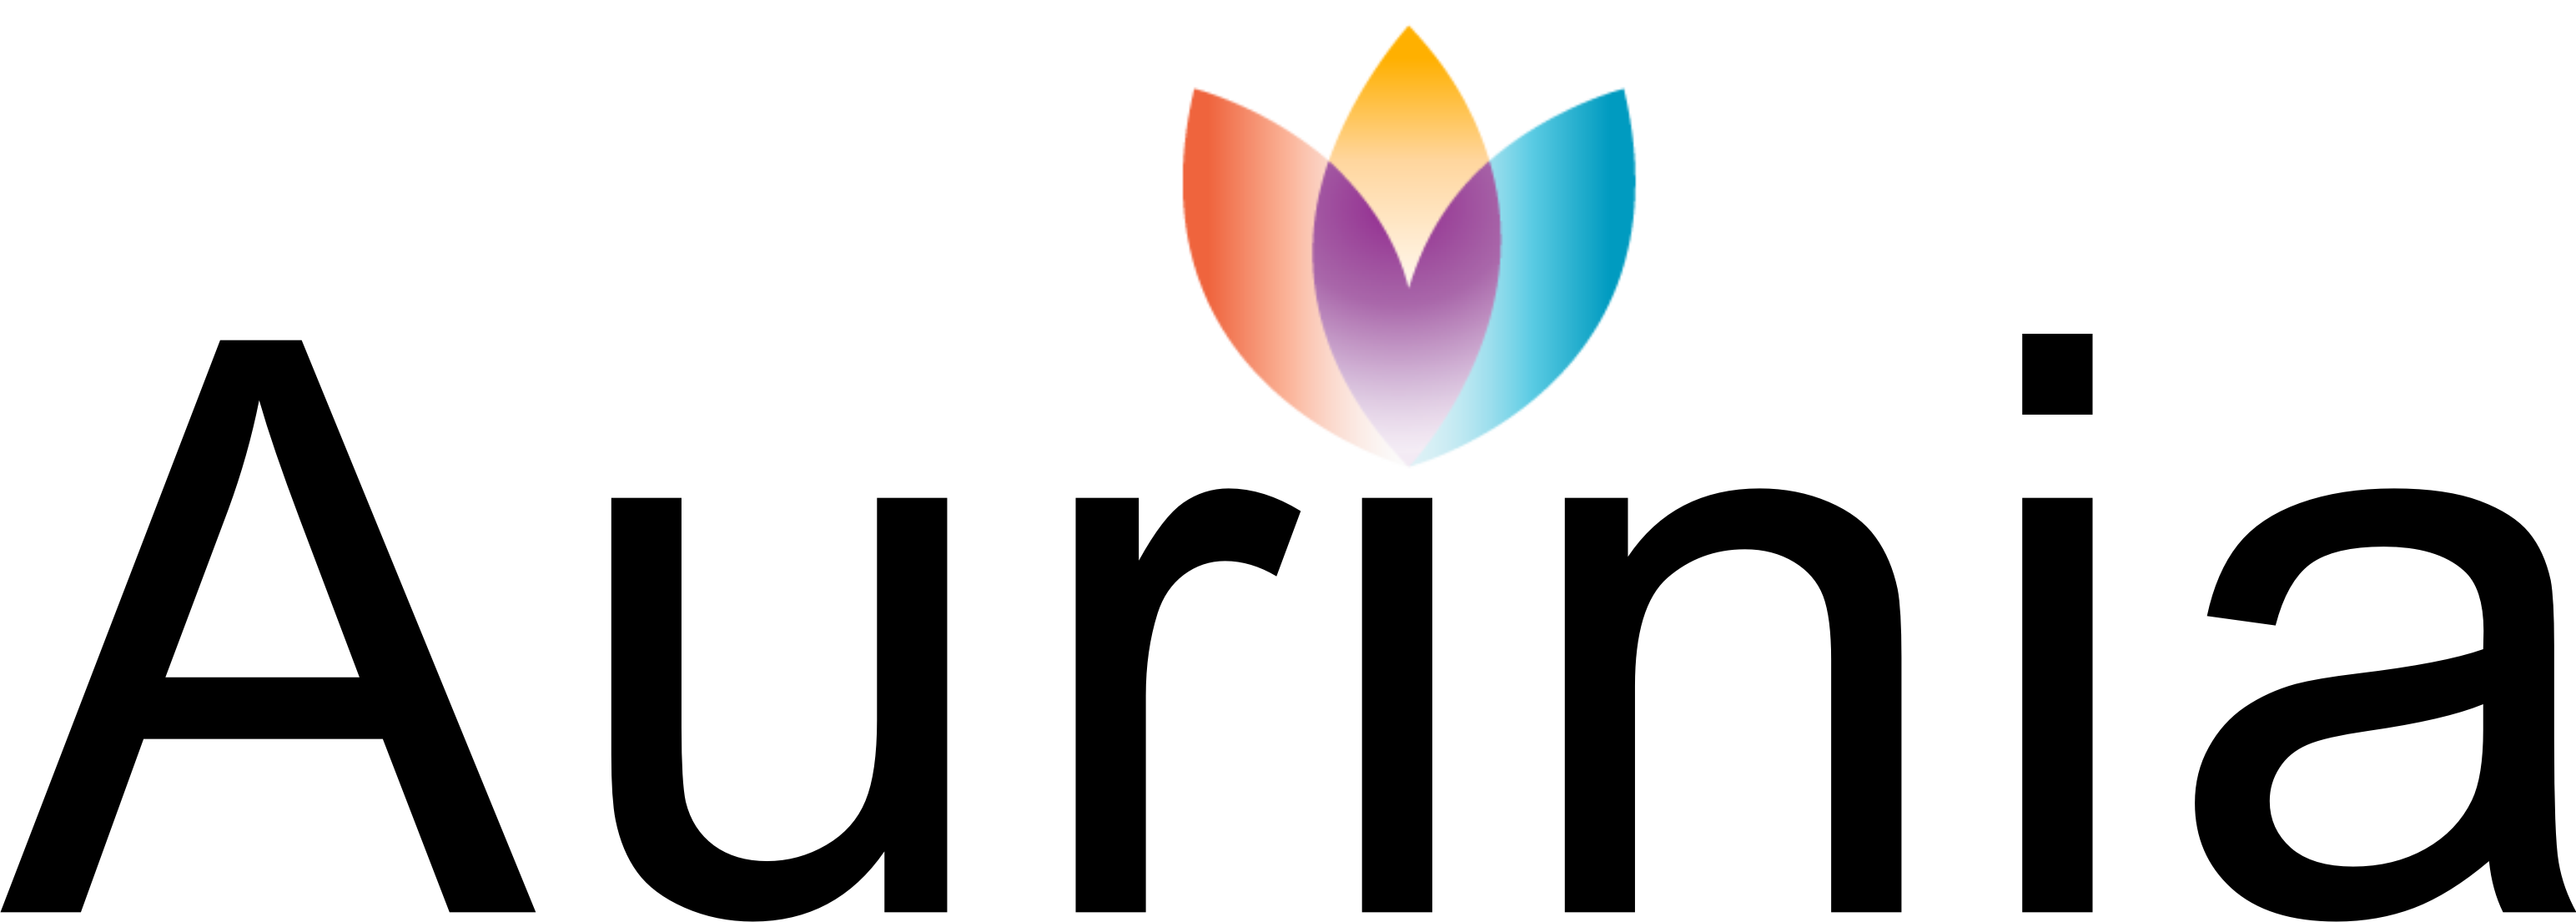 Aurinia Pharmaceuticals Inc